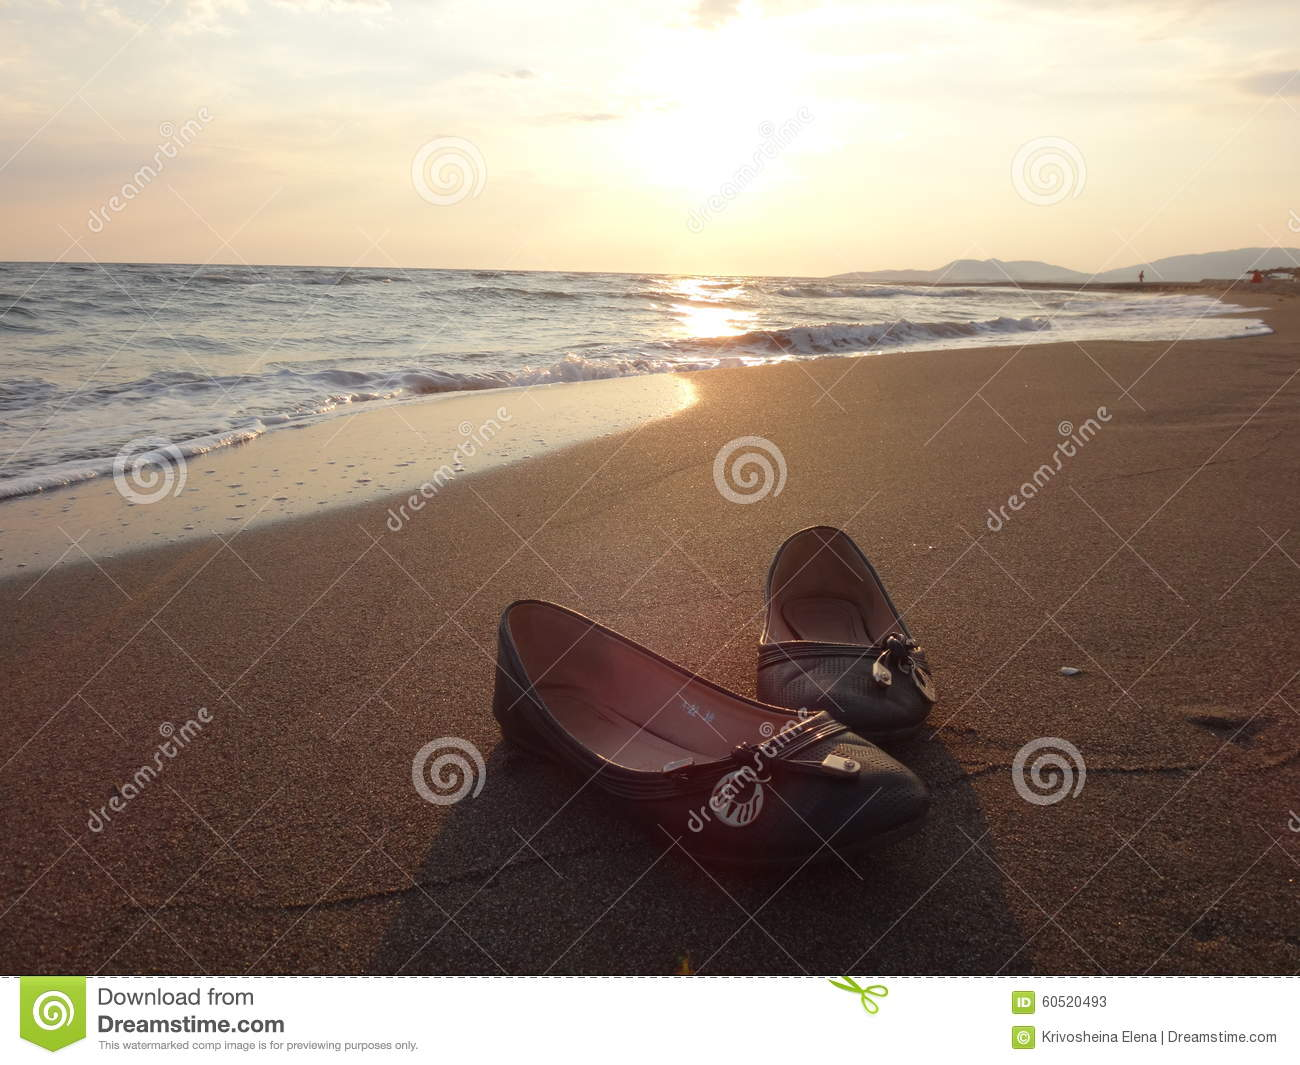 e473df509e73 Women s shoes on the sand stock image. Image of glow - 60520493